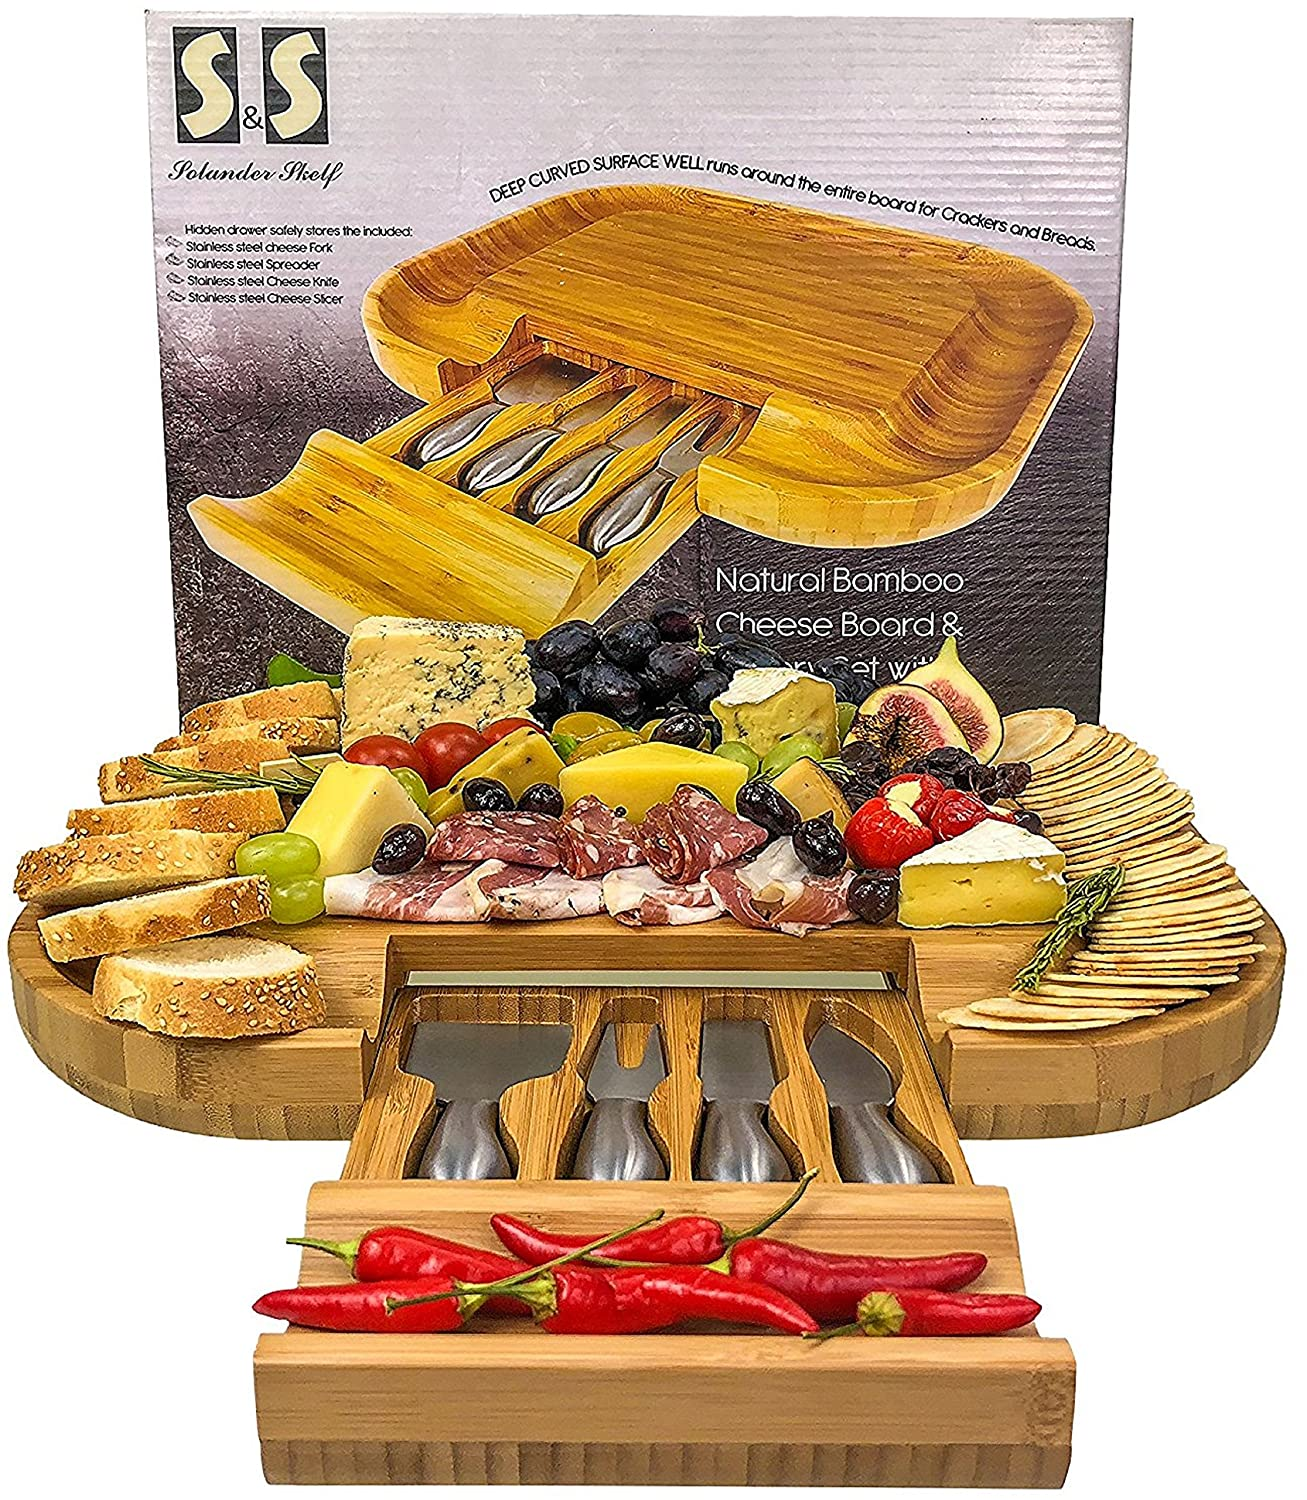 Solander Skelf Bamboo Cheese Board with Drawer & 4 Stainless Steel Cheese Knives Luxury Set Extra Spaces Serving Board Slide-Out & Utensils Gift Set Extensive Serving Set Large 100% Bamboo B073RZYKHX